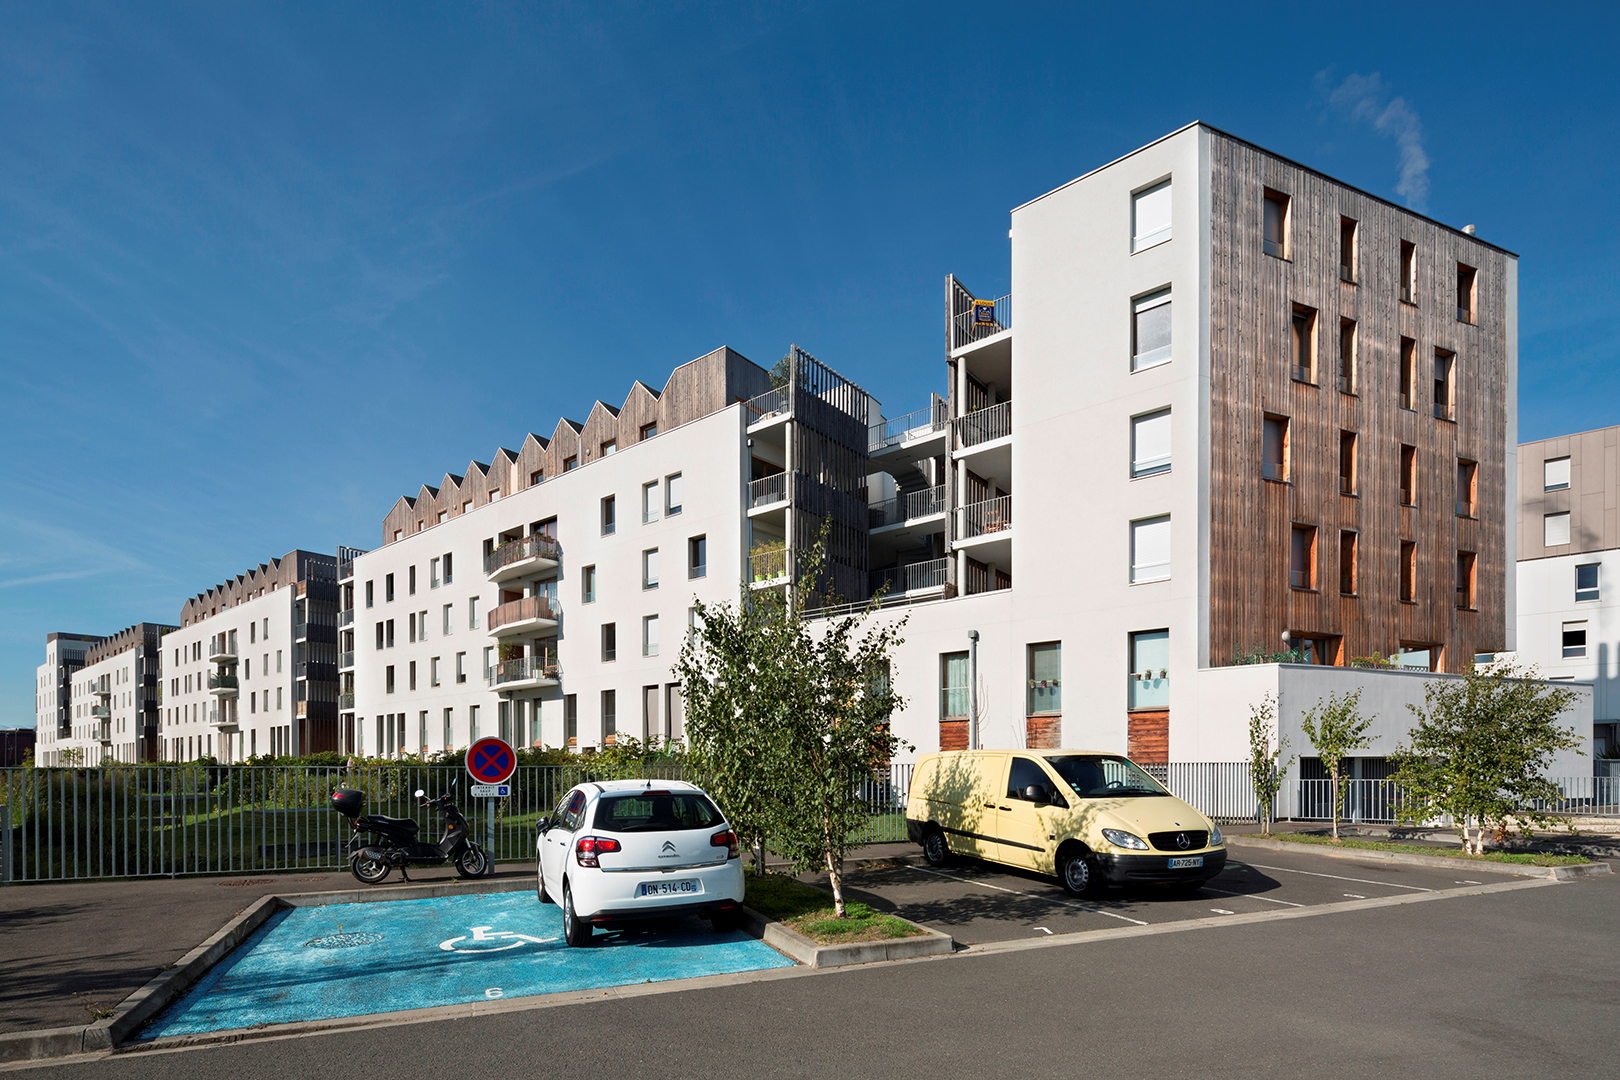 ANMA Tours Les Maisons Blanches